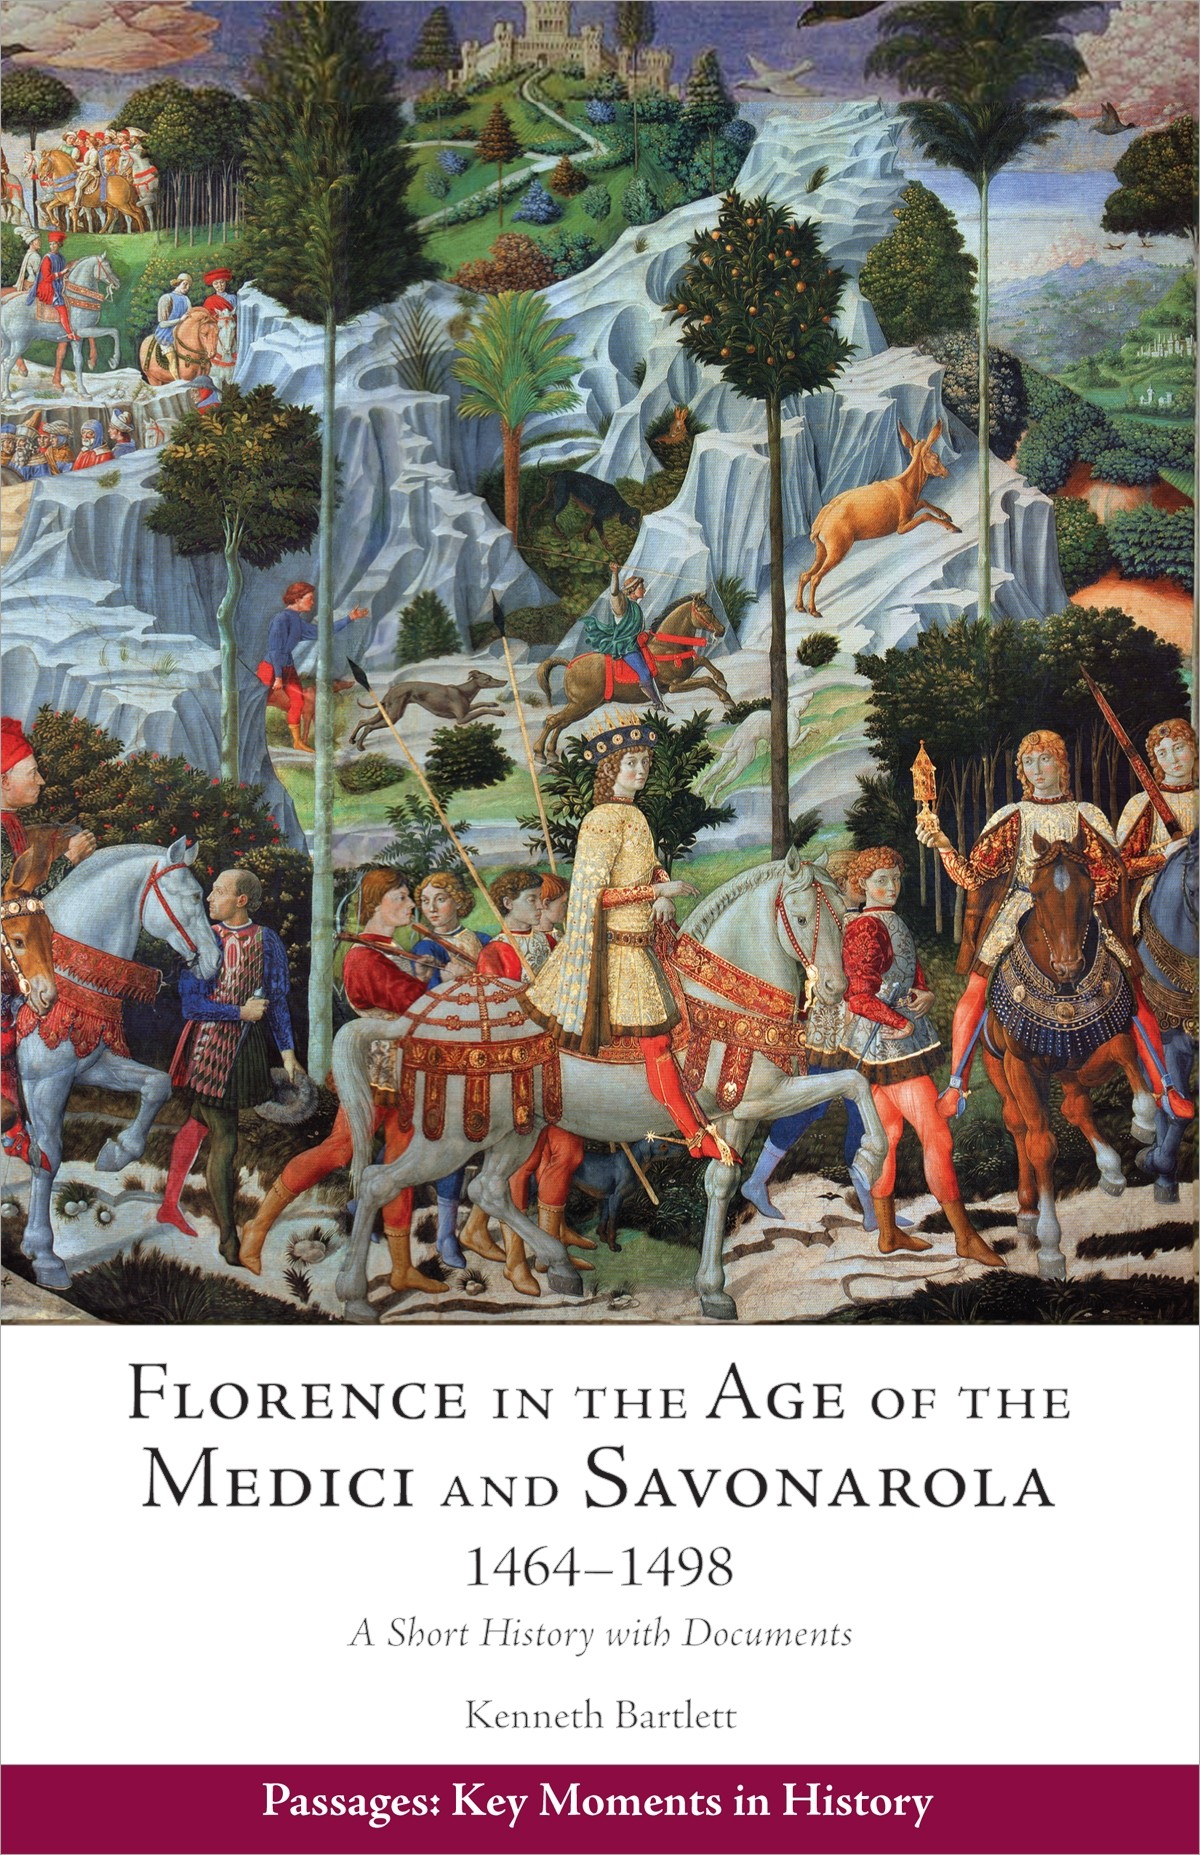 florence in the age of the medici and savonarola 1464 1498 new rh hackettpublishing com Manual Guide Epson 420 Paperwork Guide